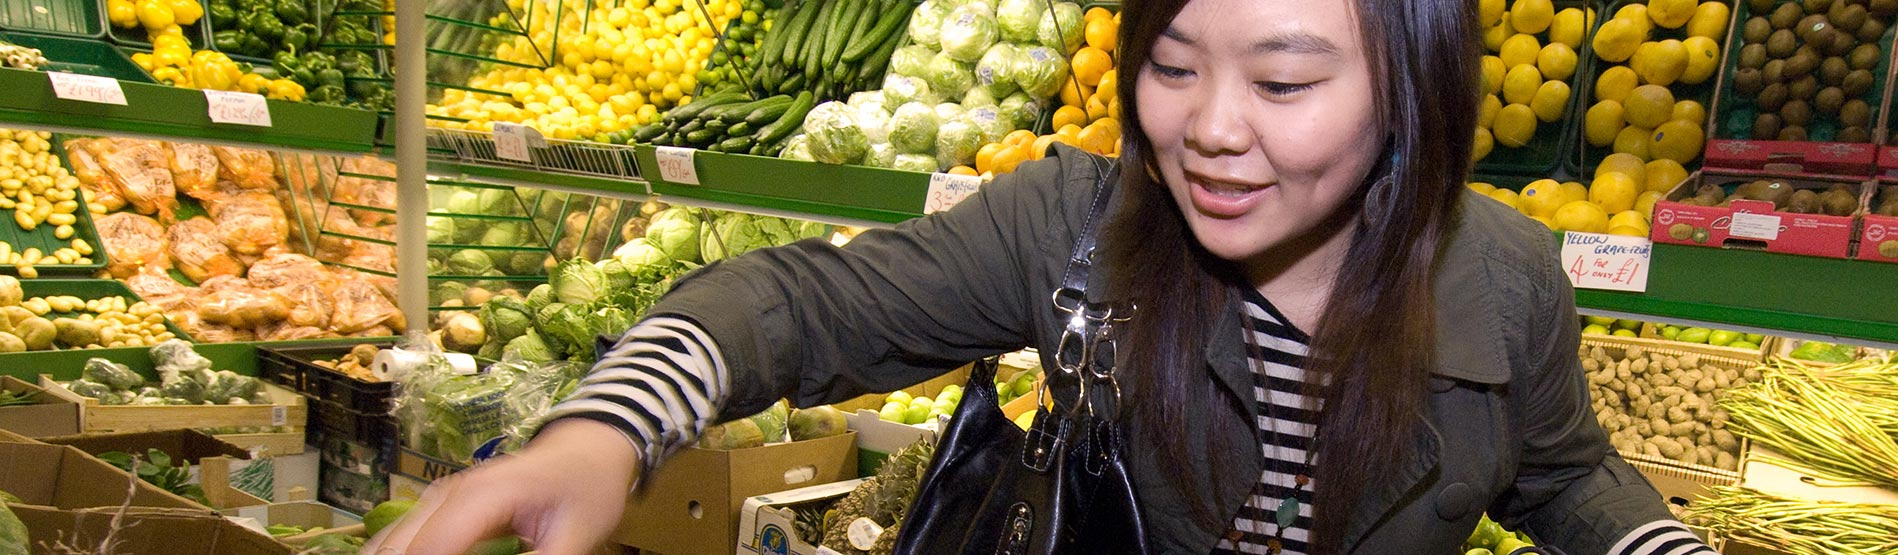 Student picking out vegetables in a supermarket.